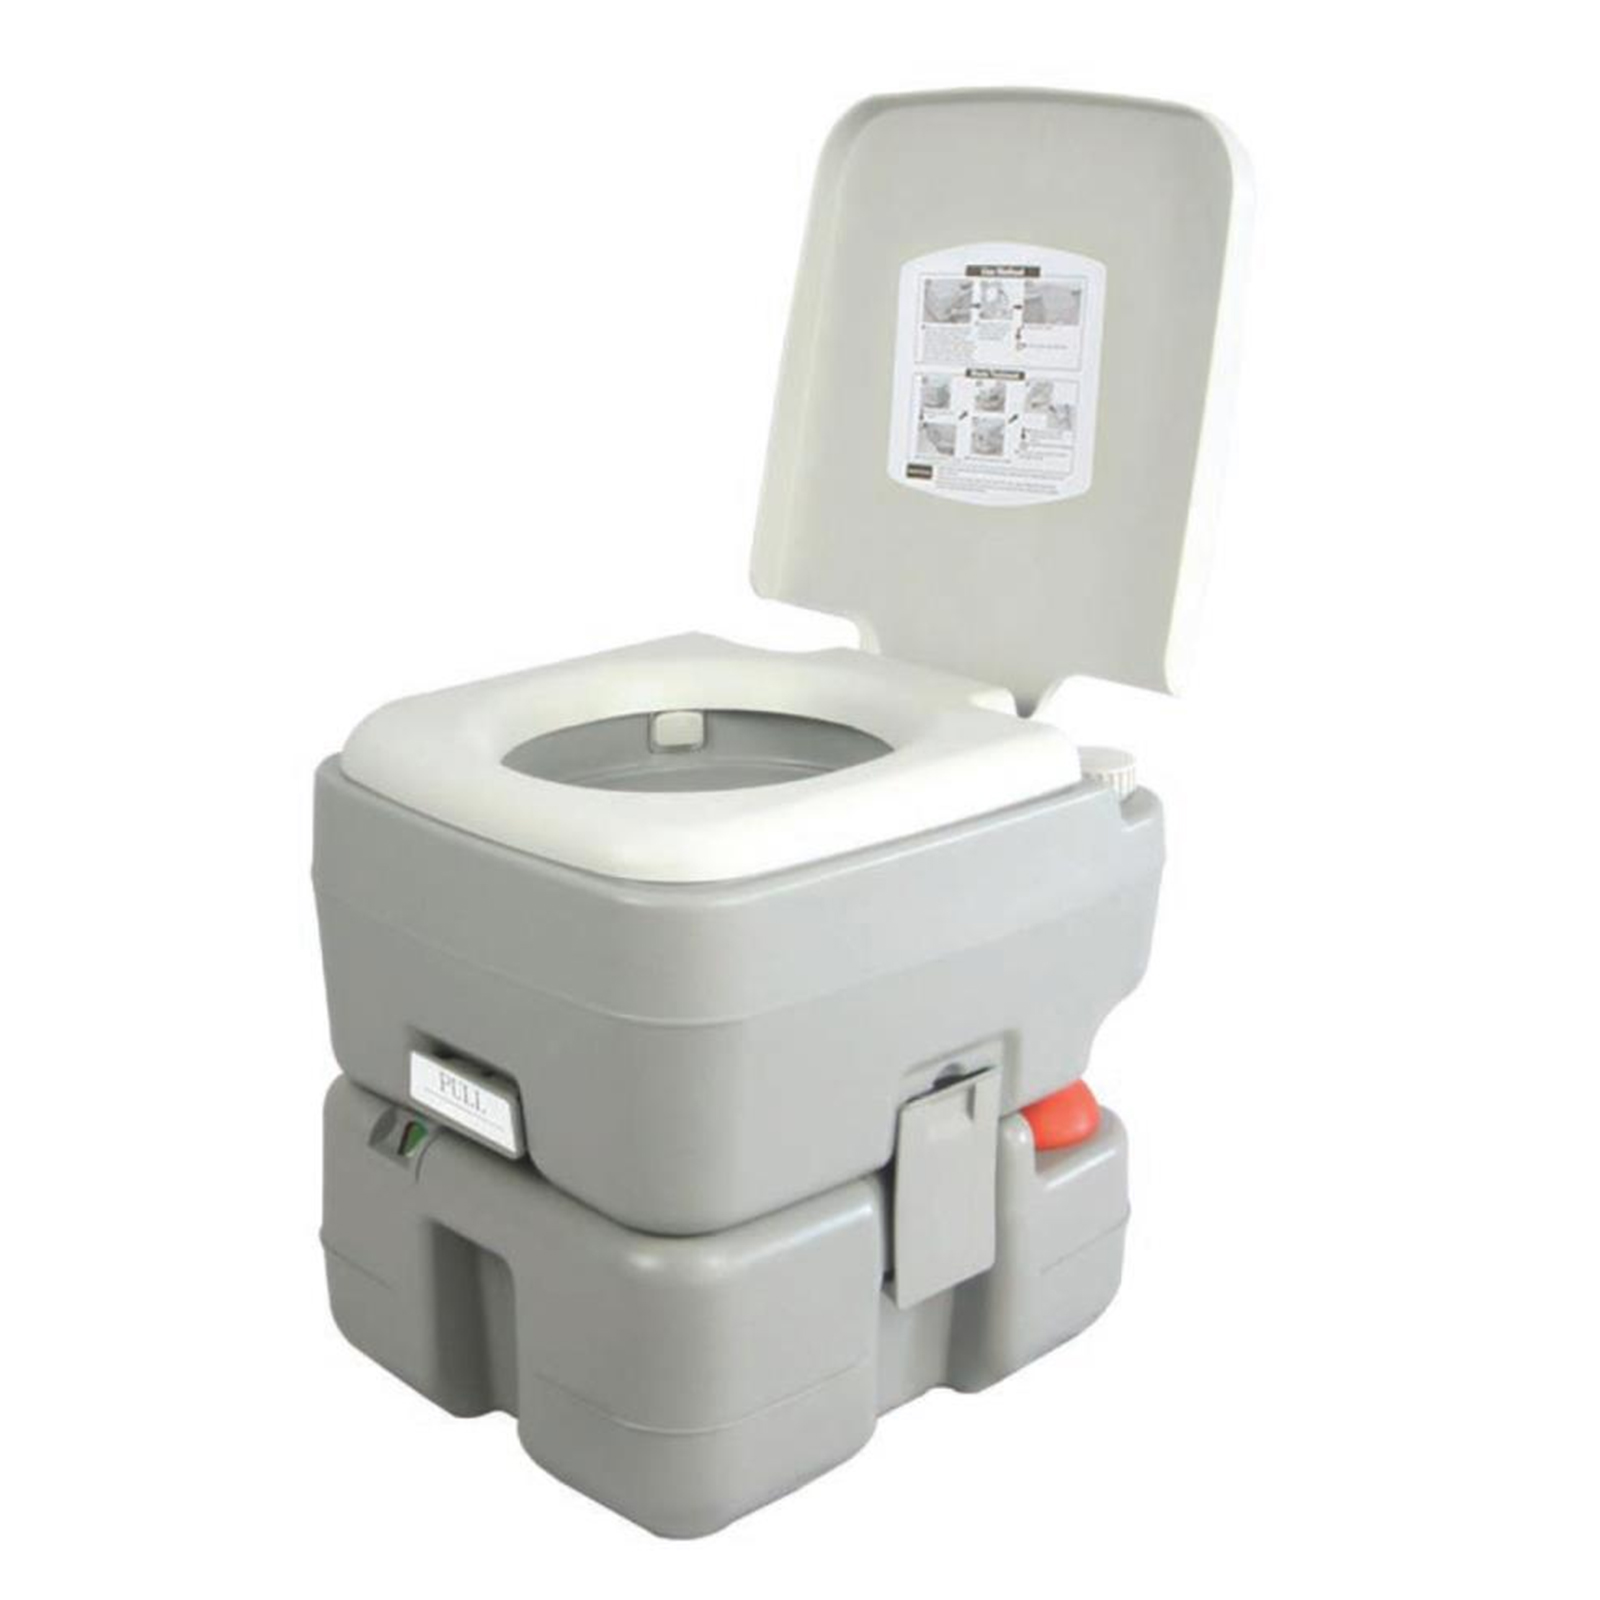 Serene Life Portable Toilet Outdoor & Travel Toilet, 5.3 Gal. by Pyle